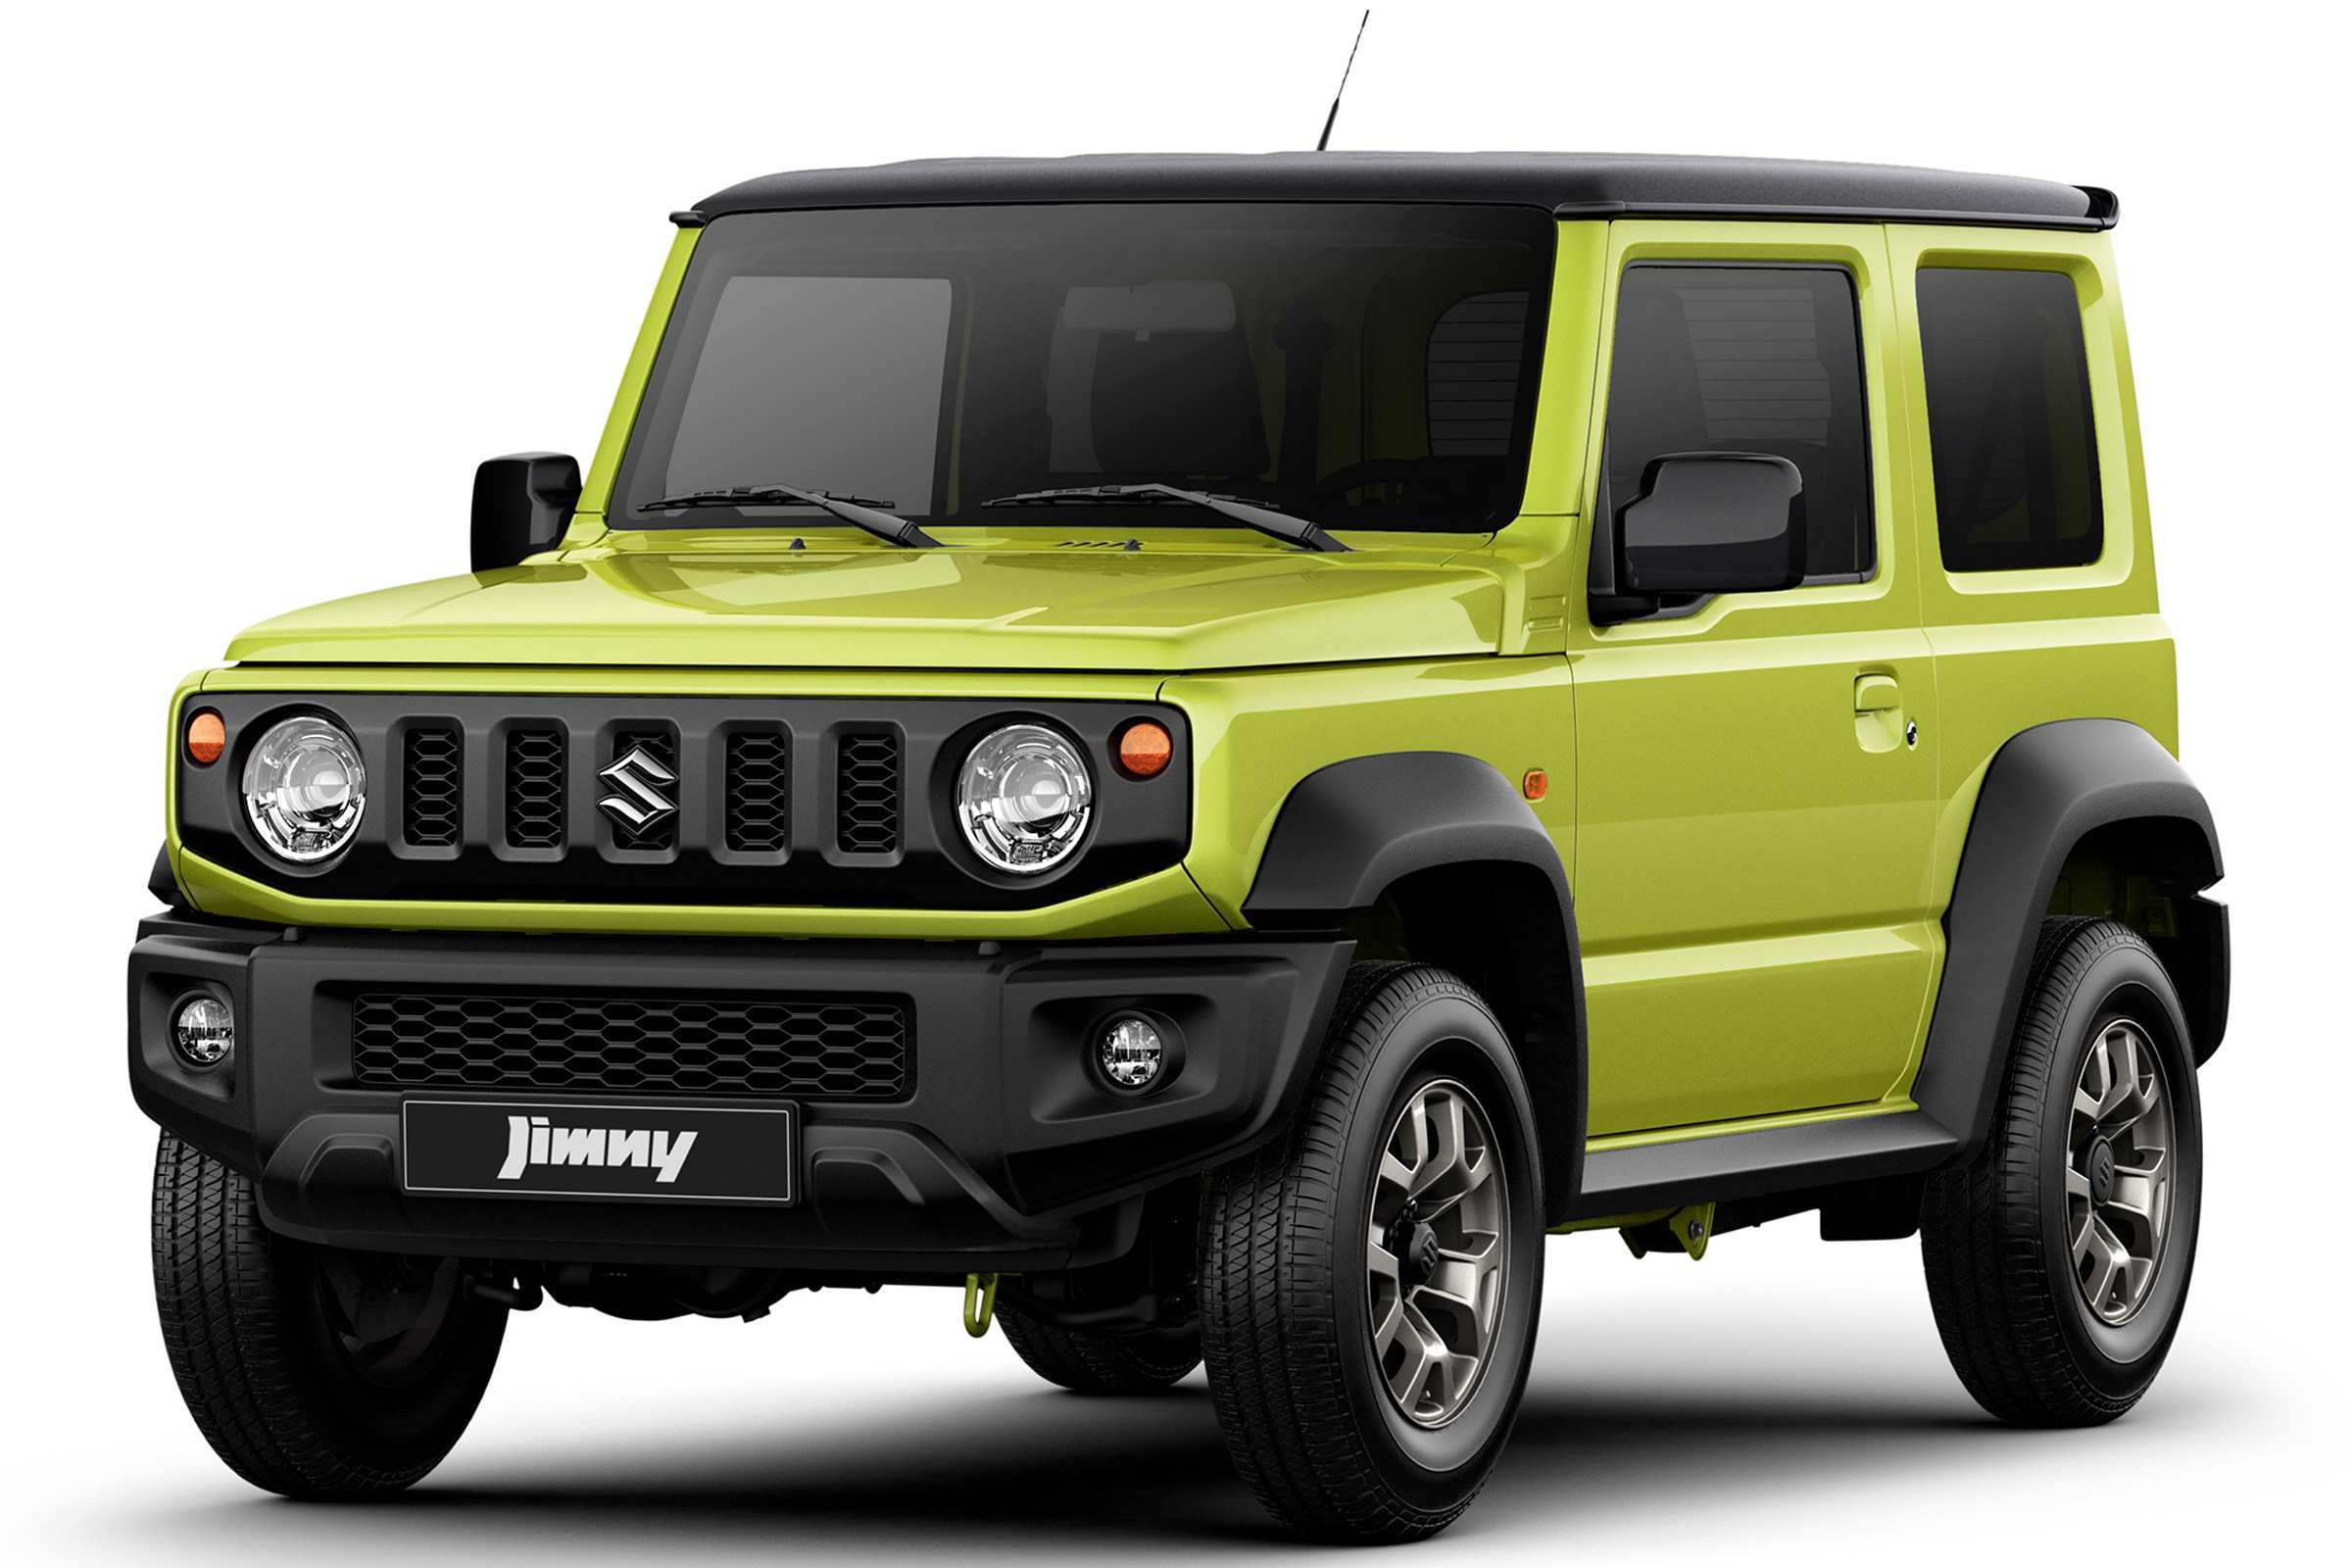 76 New Suzuki Jimny Interior Performance with Suzuki Jimny Interior